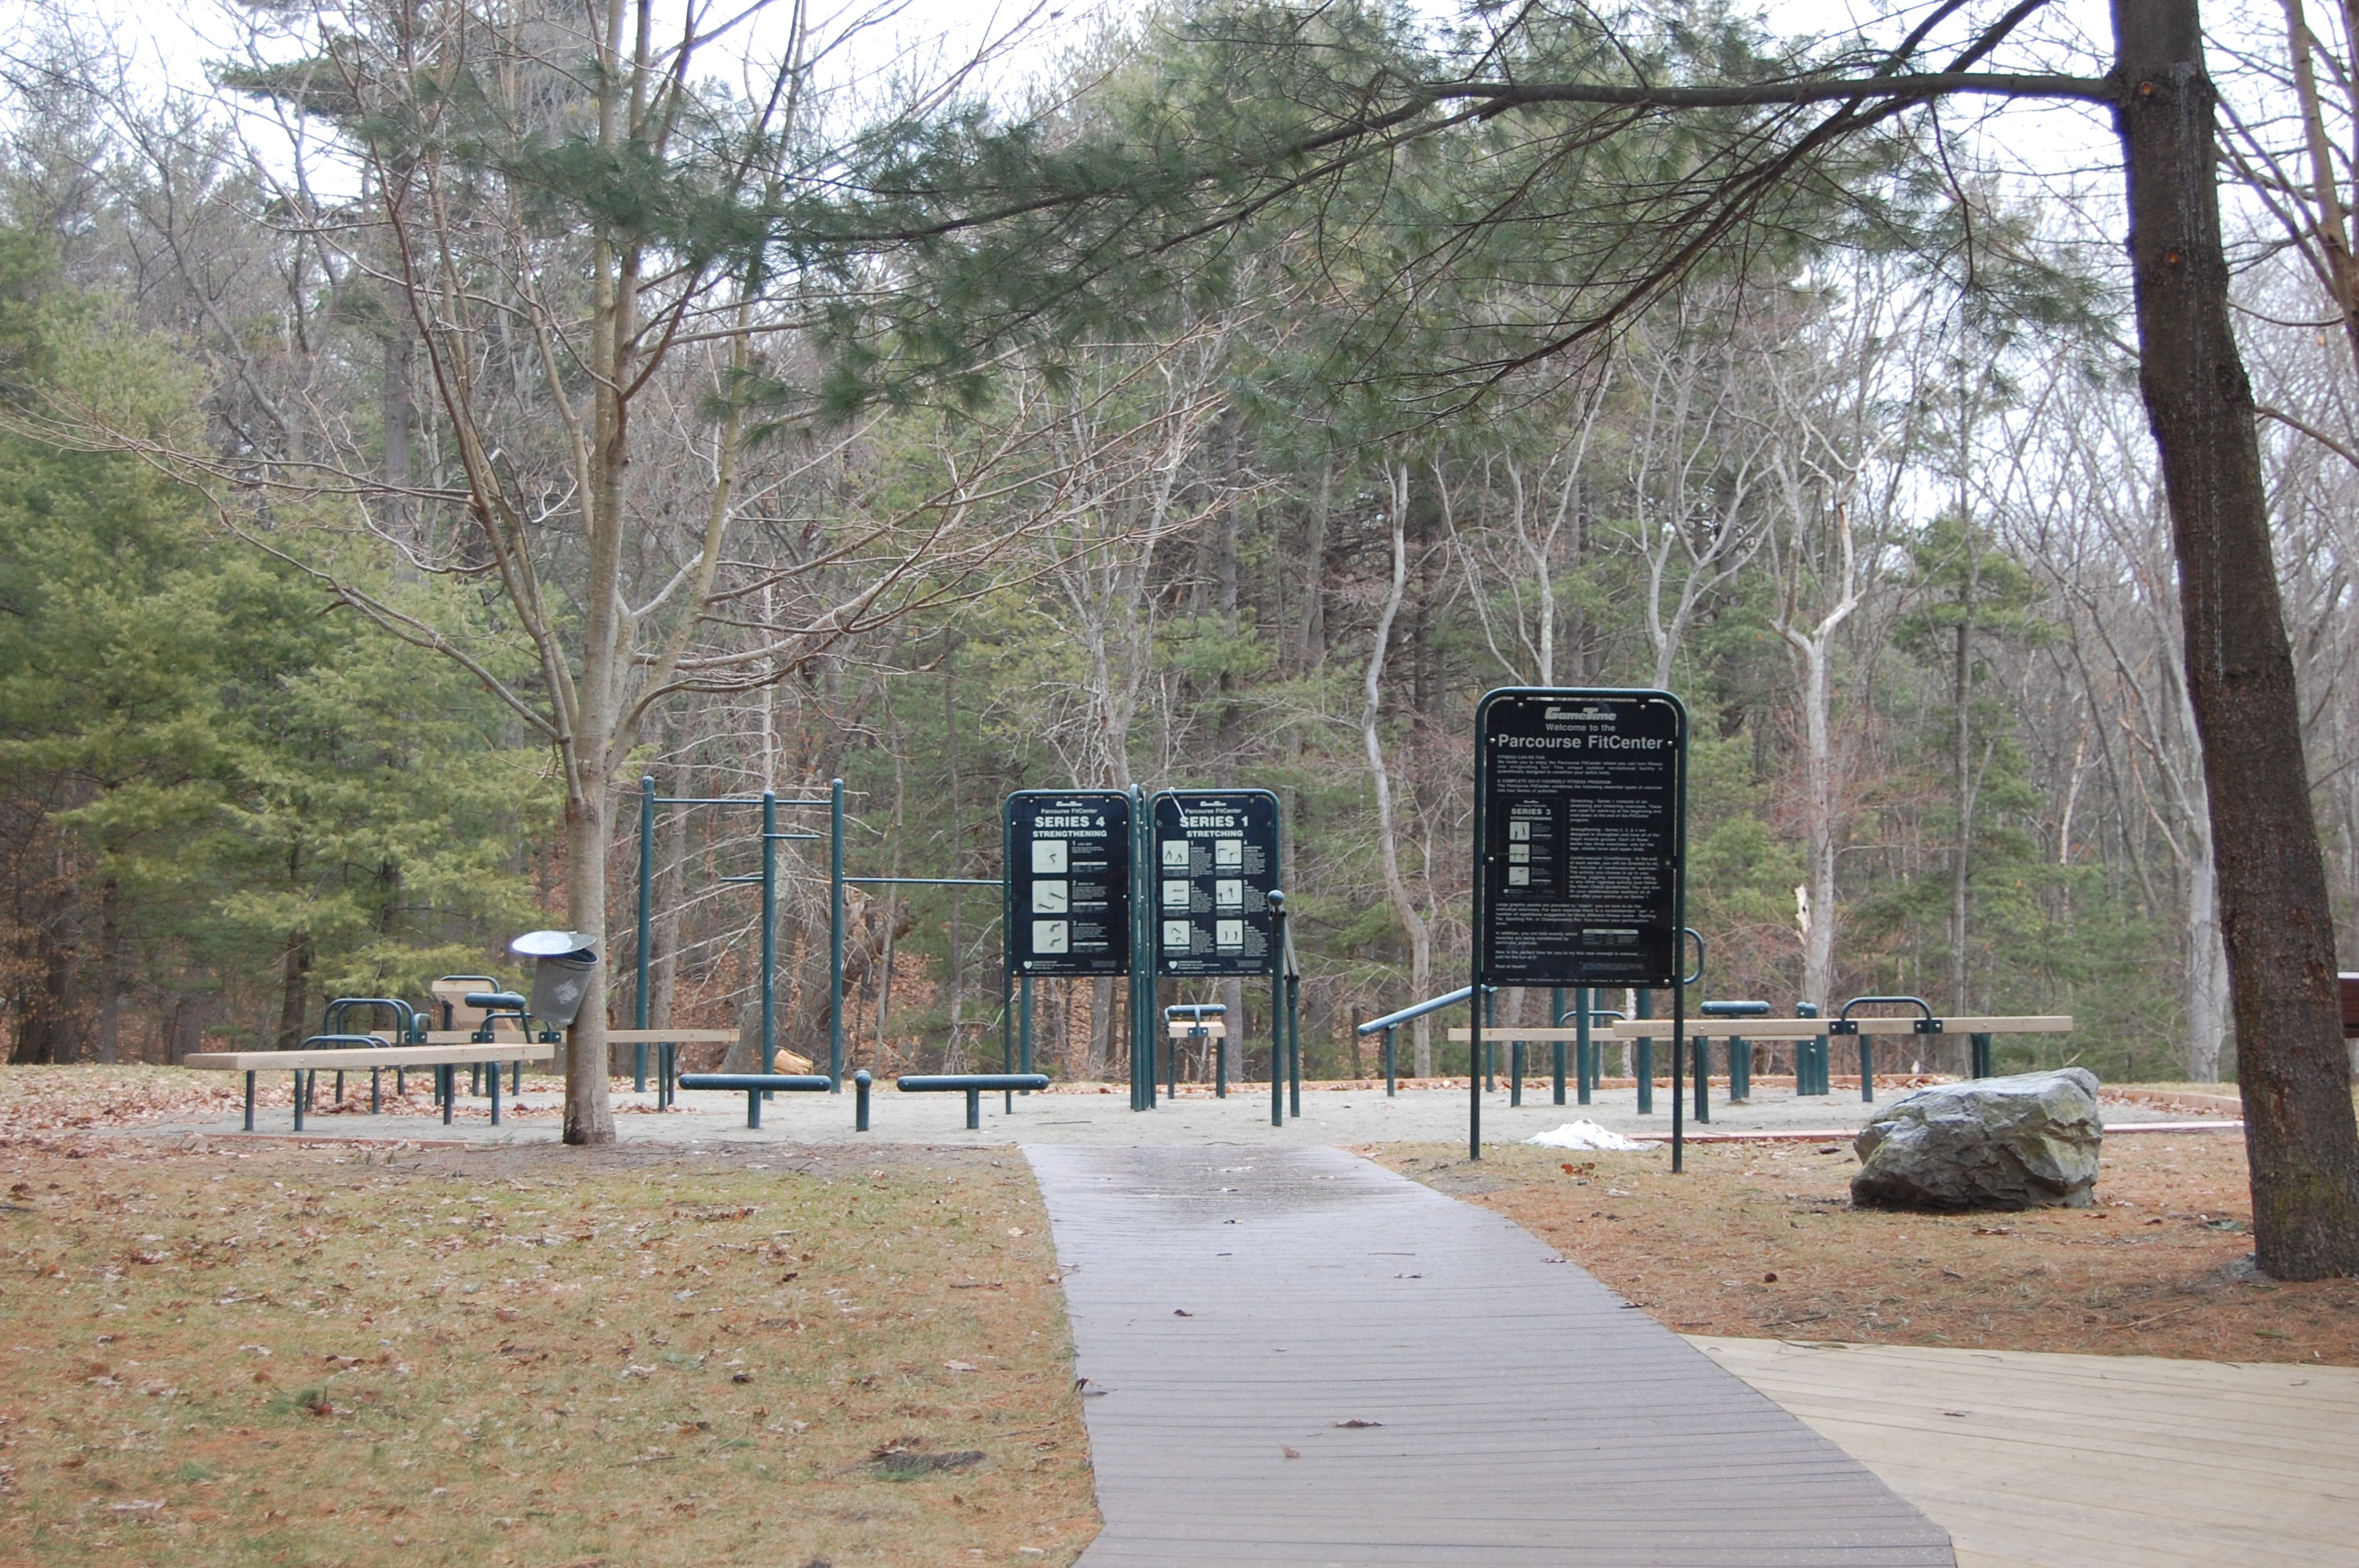 Breakheart Reservation - Saugus - Take a day trip!